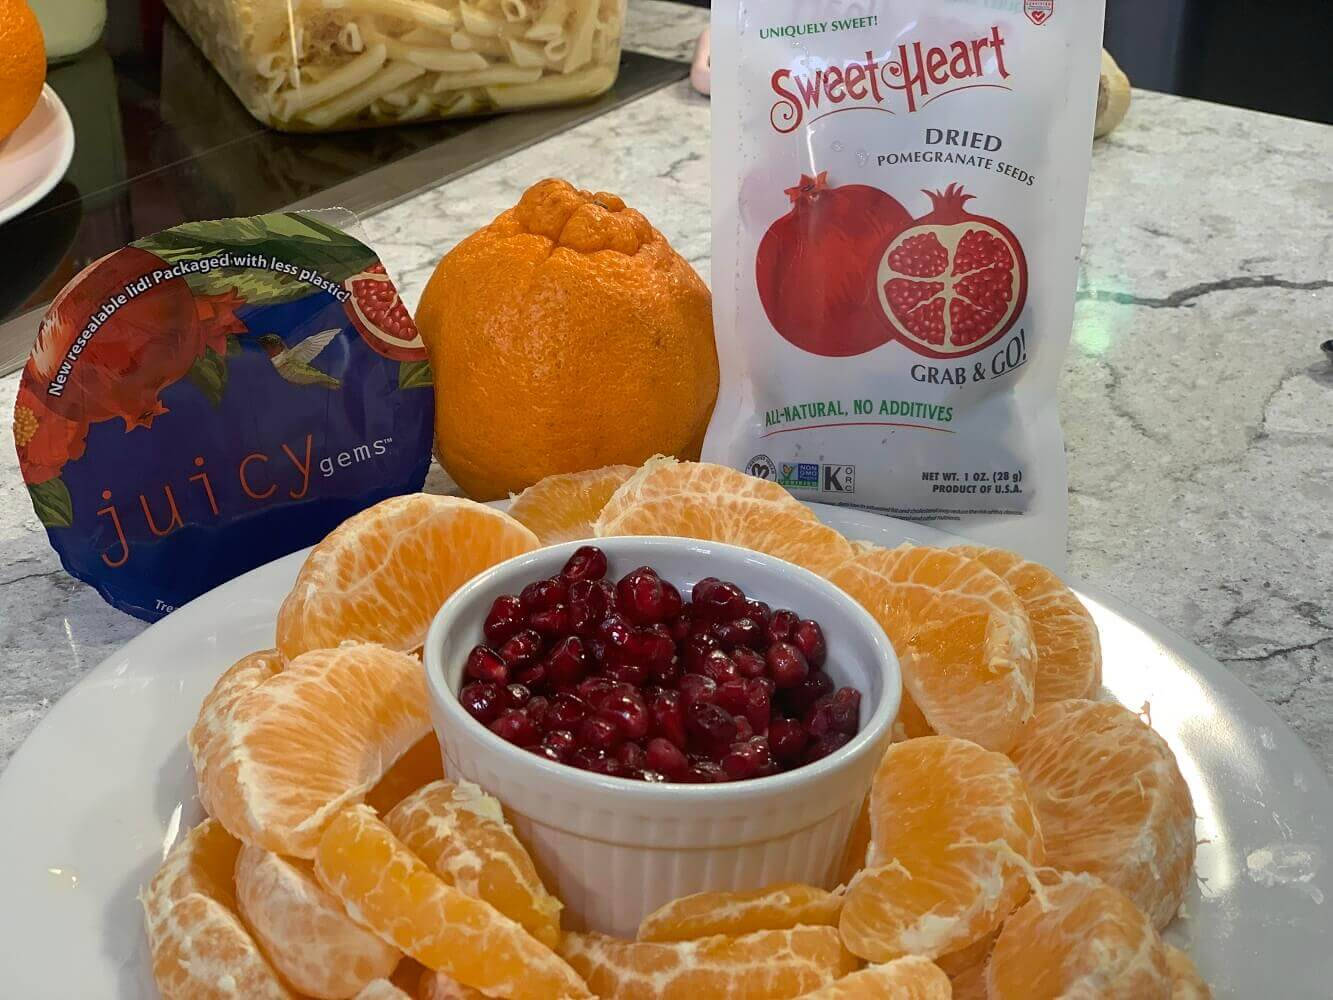 Big Honeys® and SweetHeart Dried Pomegranate Seeds